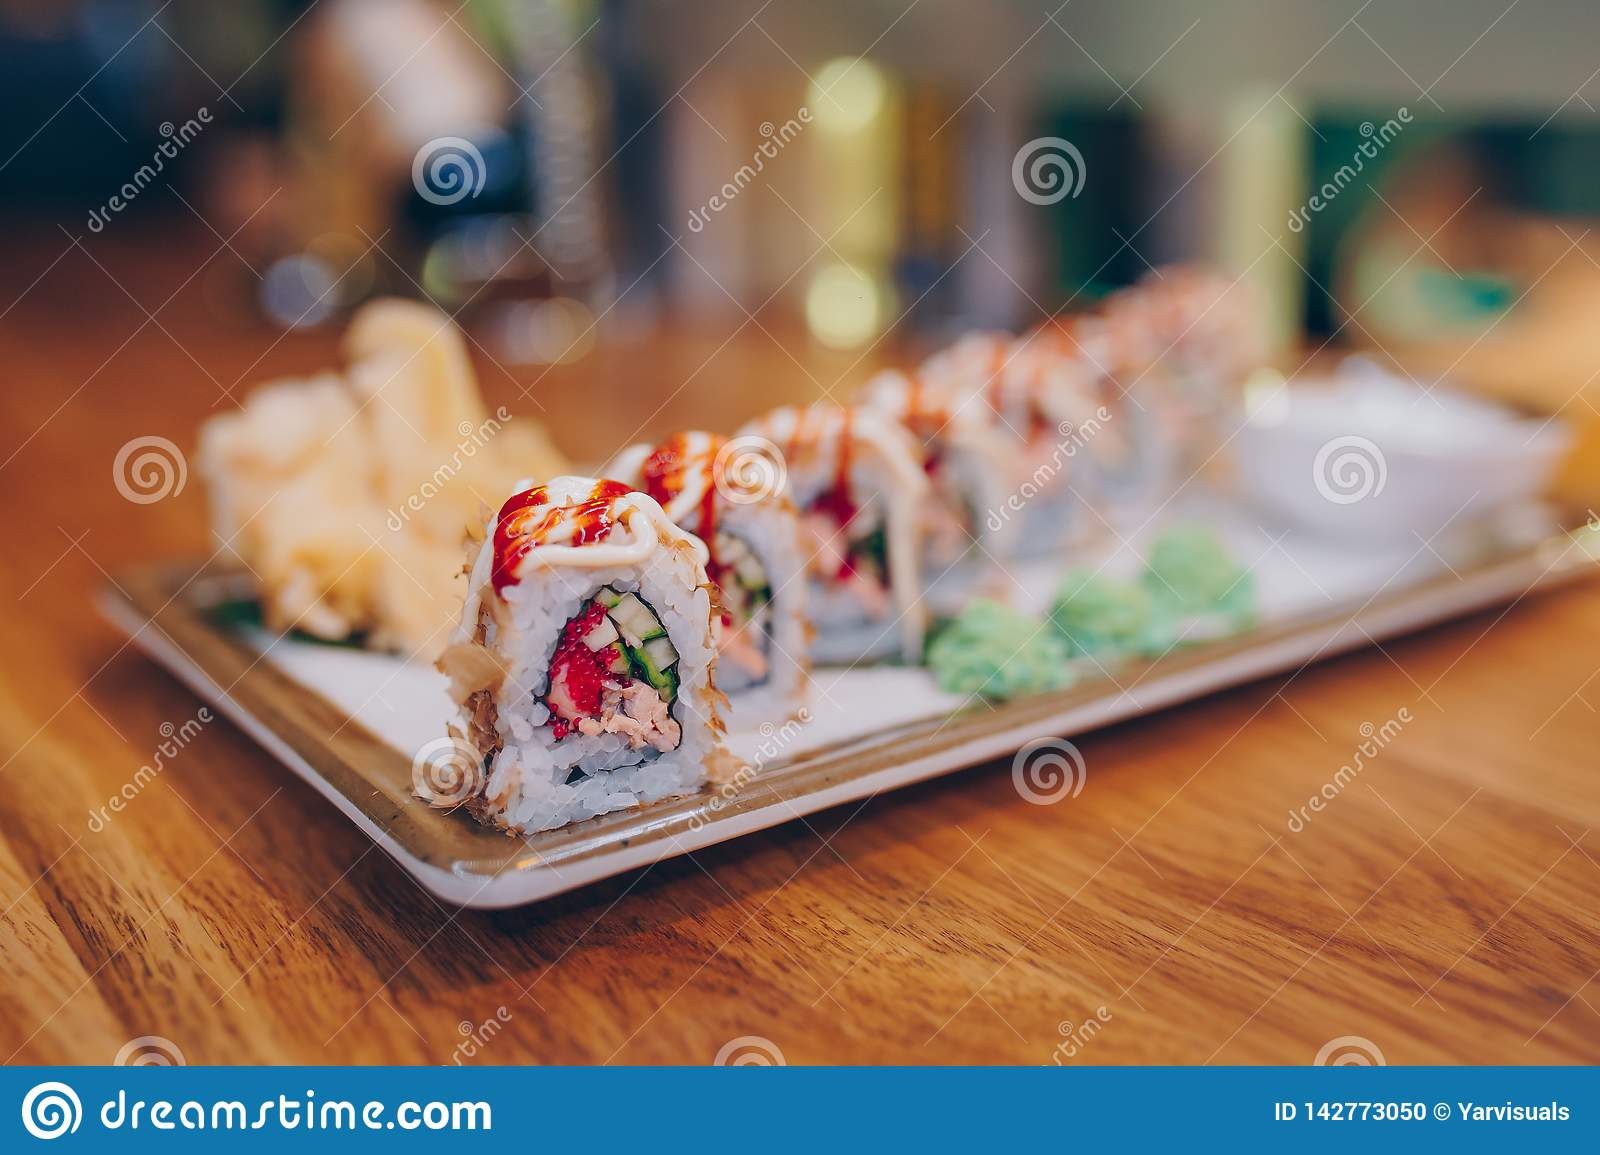 Close Up Kyoto Eel Smoked Philadelphia Red Green Dragon California Ebi Roll Rainbow Set Rolls Assorti In Night Dining Restaurant Stock Photo Image Of Delicious Lunch 142773050